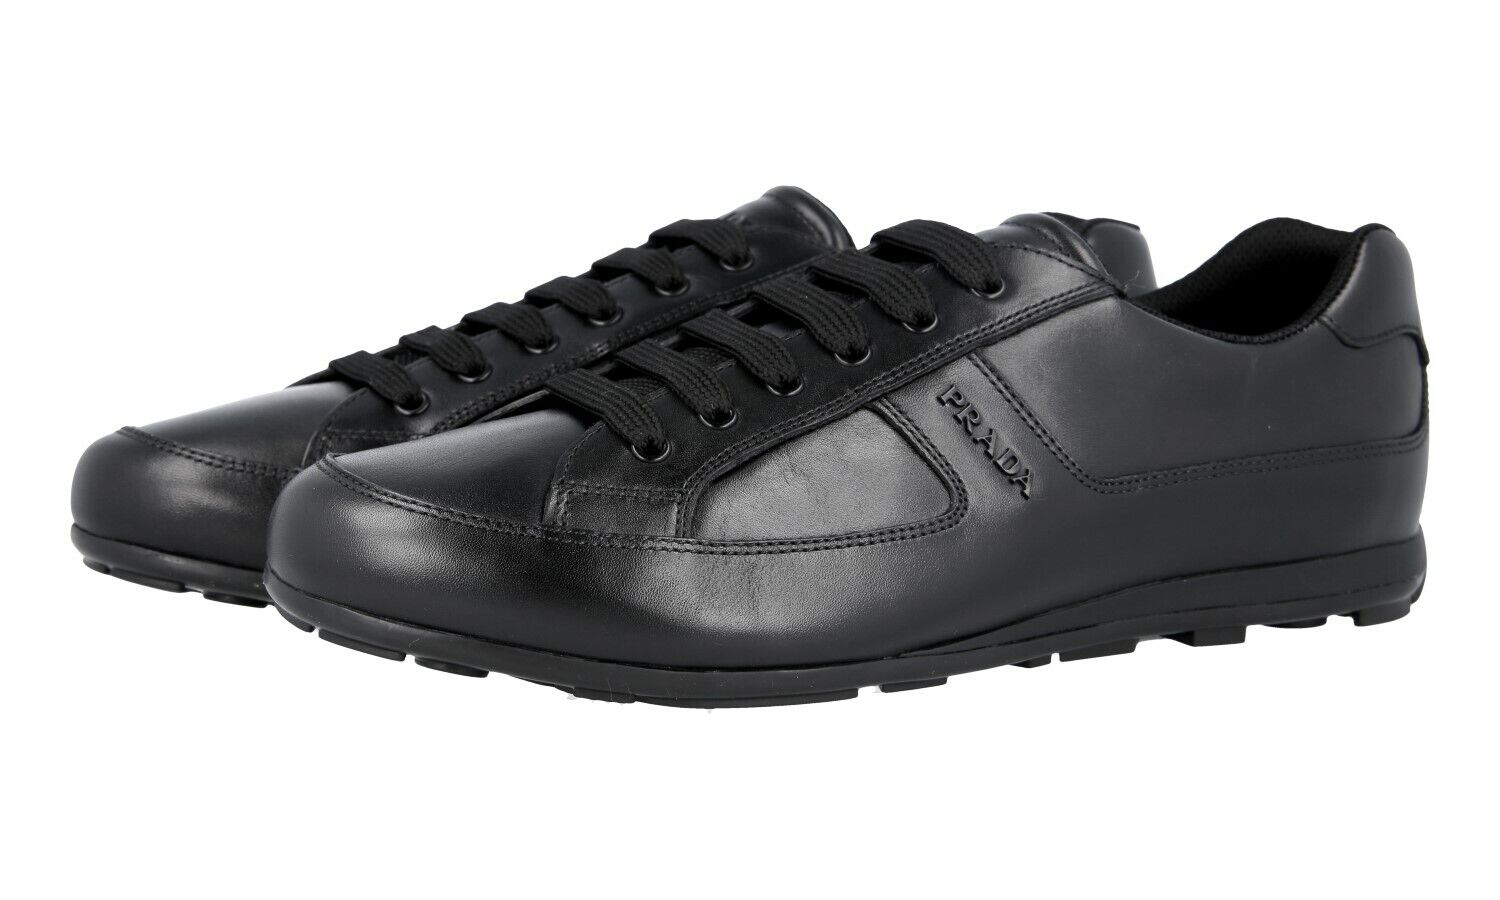 AUTH LUXURY PRADA SNEAKERS SHOES 4E3231 BLACK LEATHER NEW US 9 EU 42 42,5